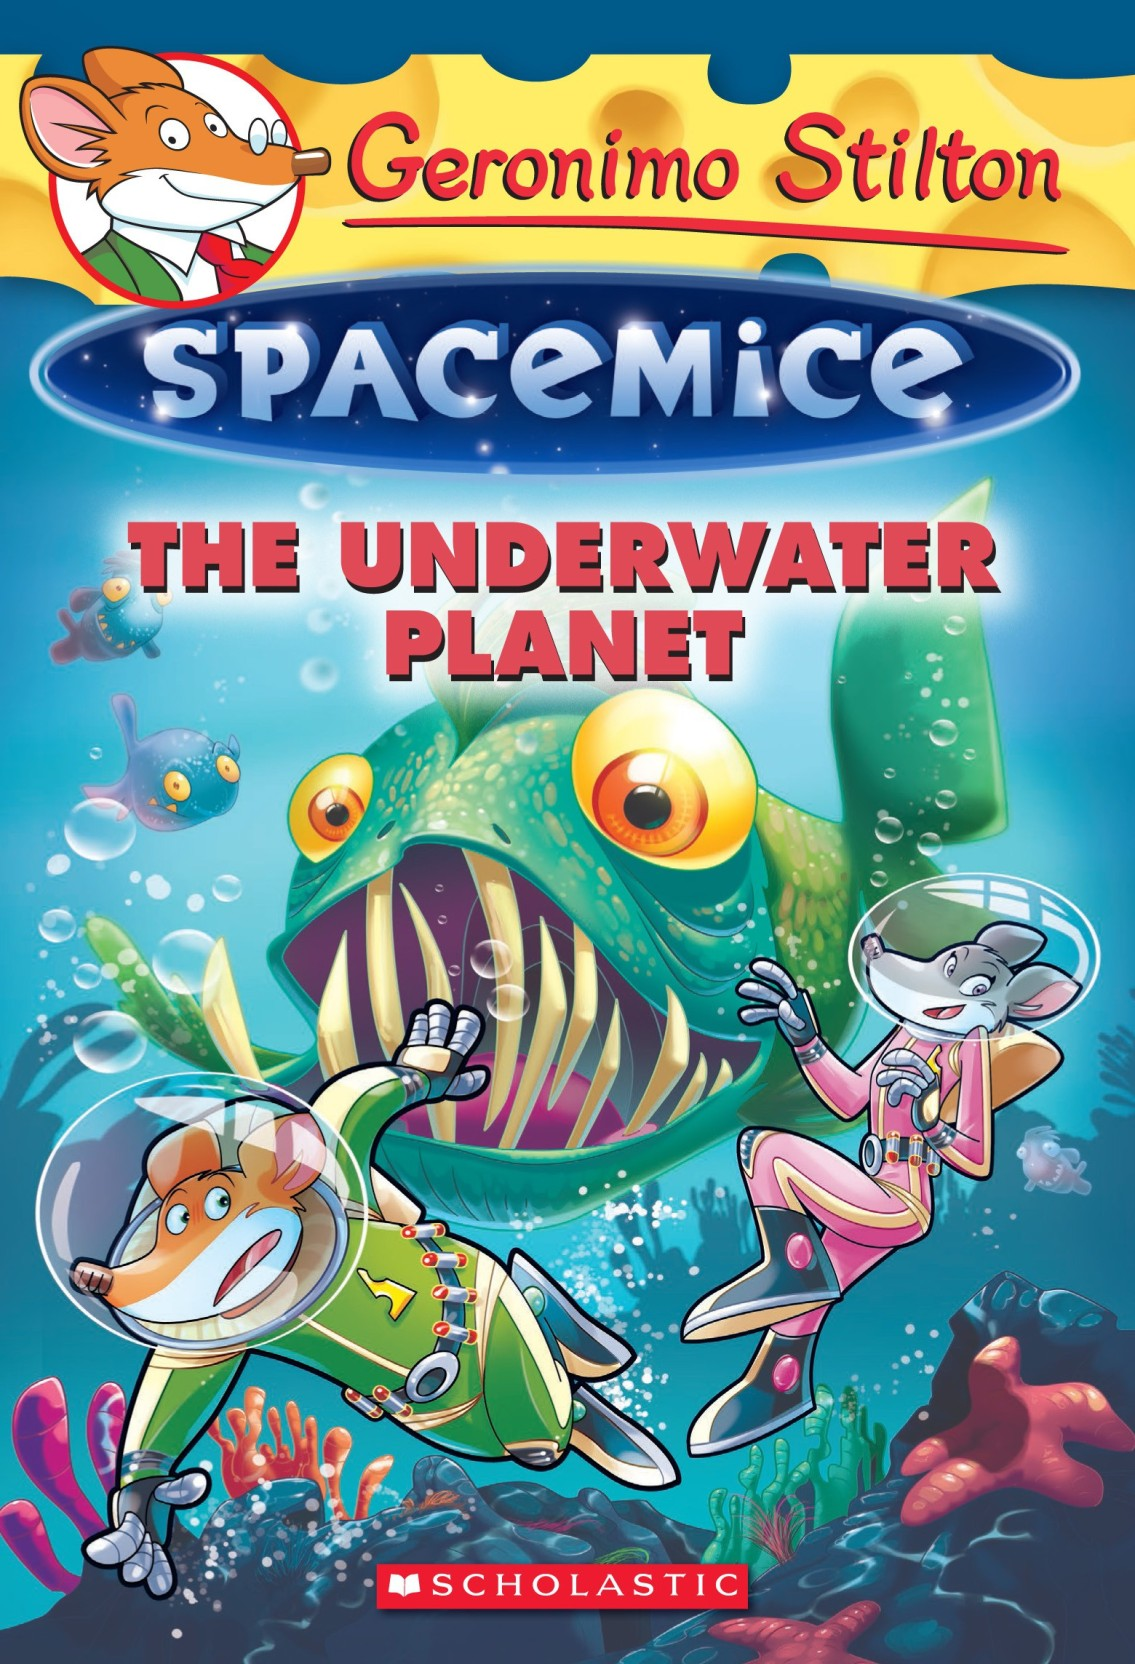 Geronimo Stilton Spacemice the Underwater Planet. ADD TO CART